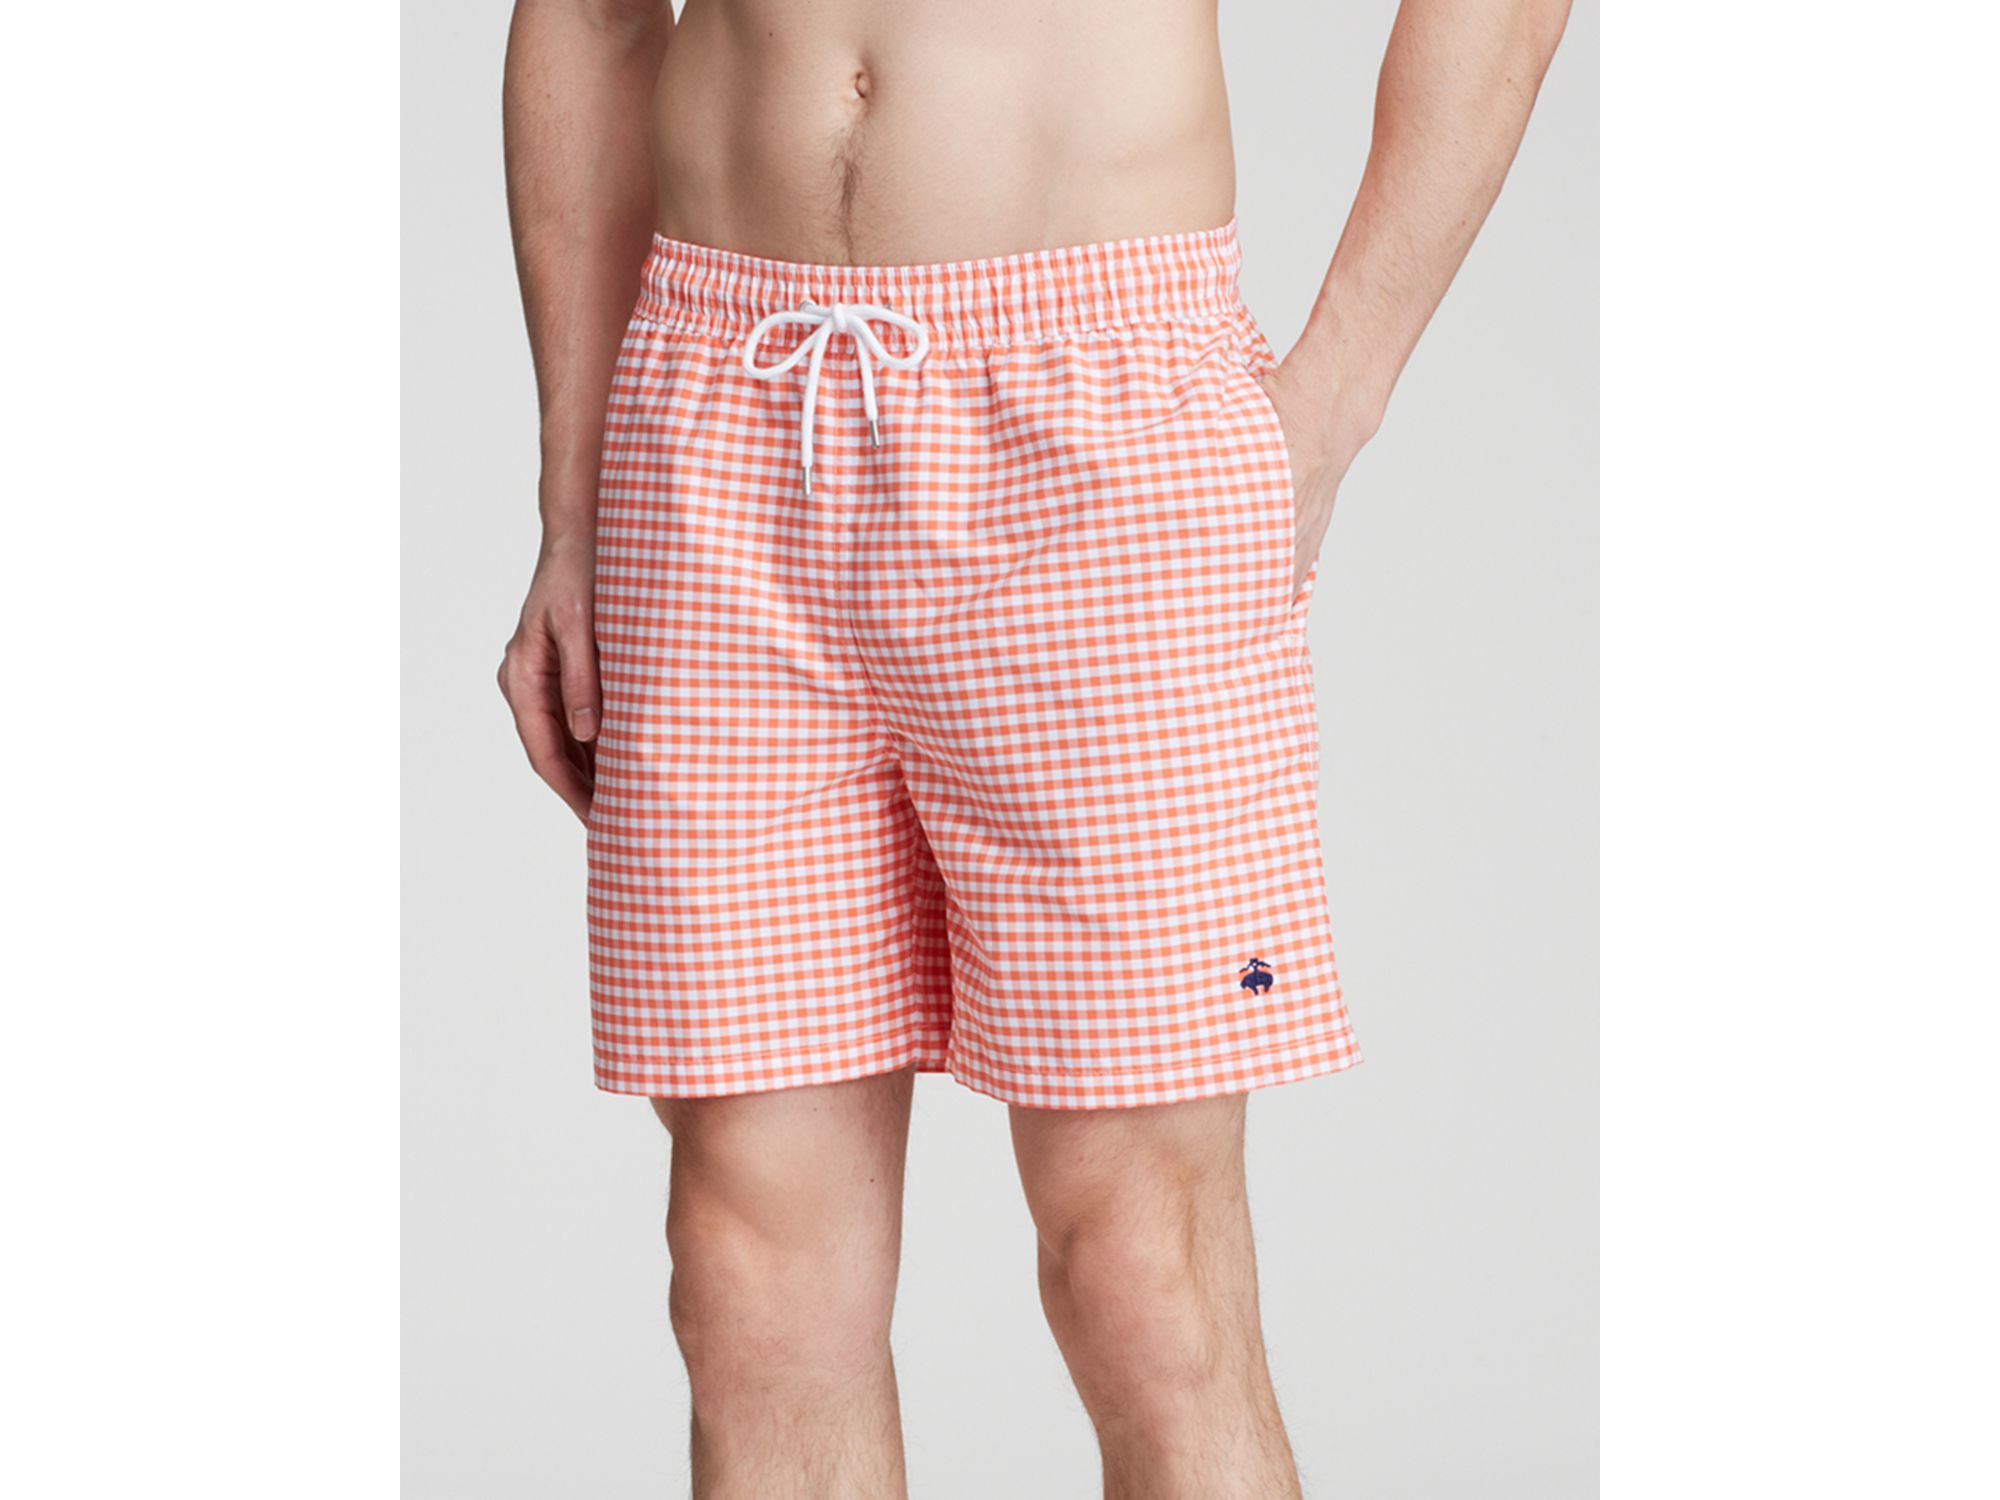 ea46f78c1d Brooks Brothers Gingham Swim Trunks in Pink for Men - Lyst